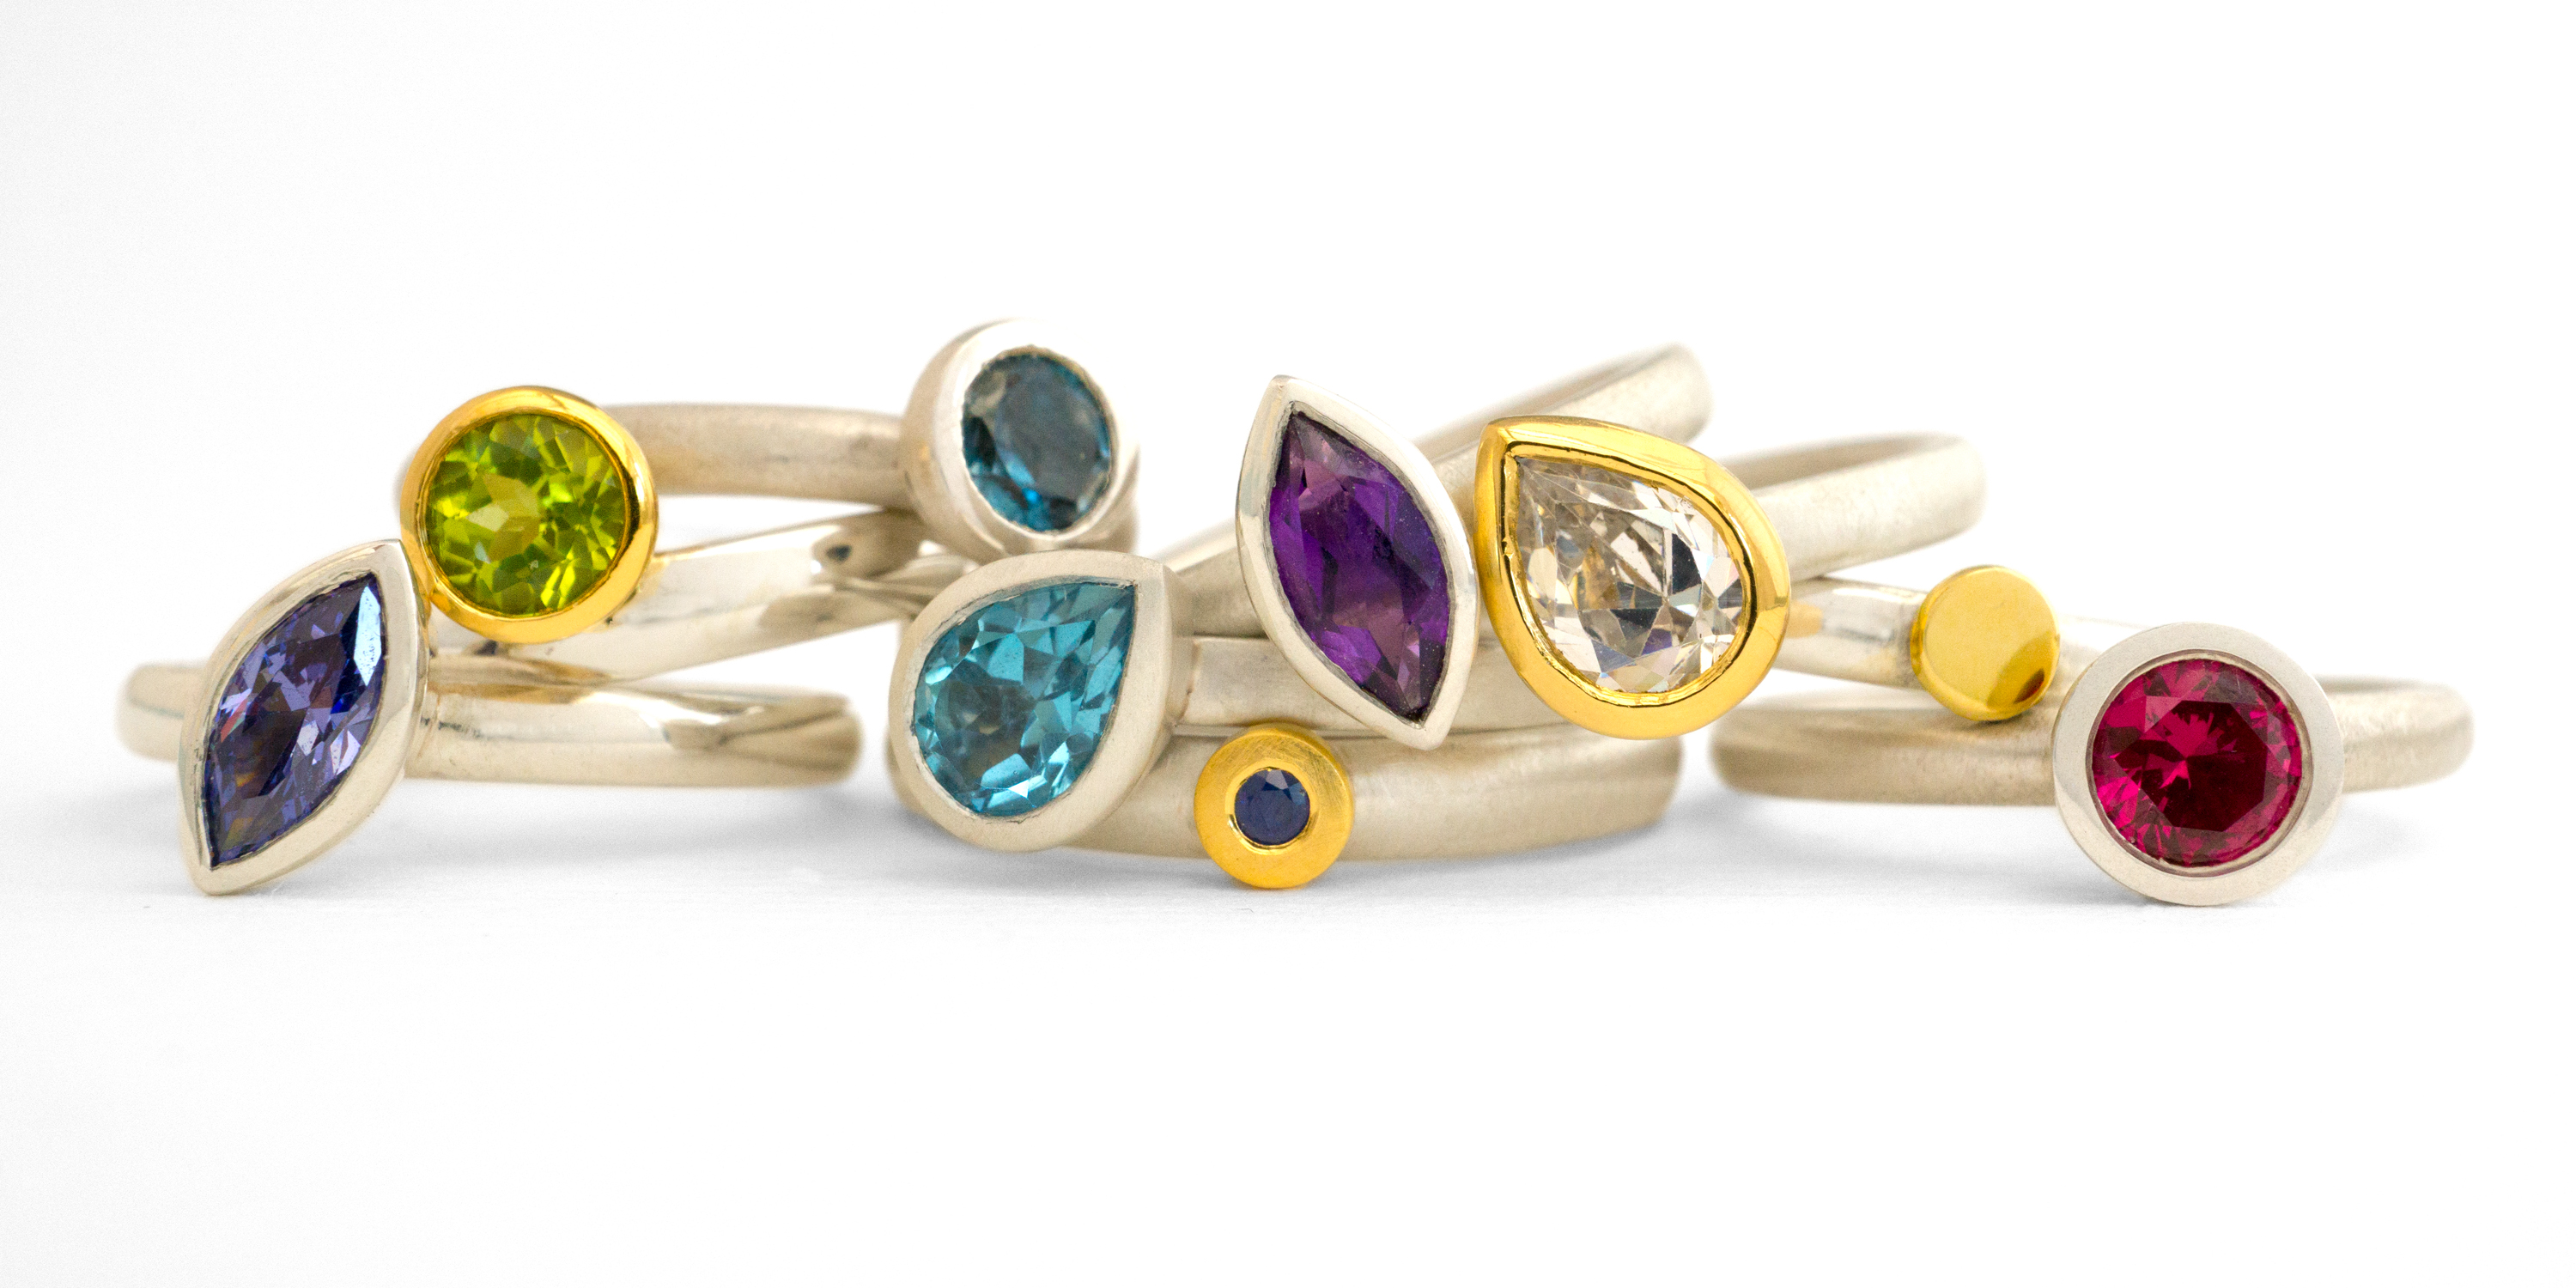 Silver, 18 carat gold and gemstone rings